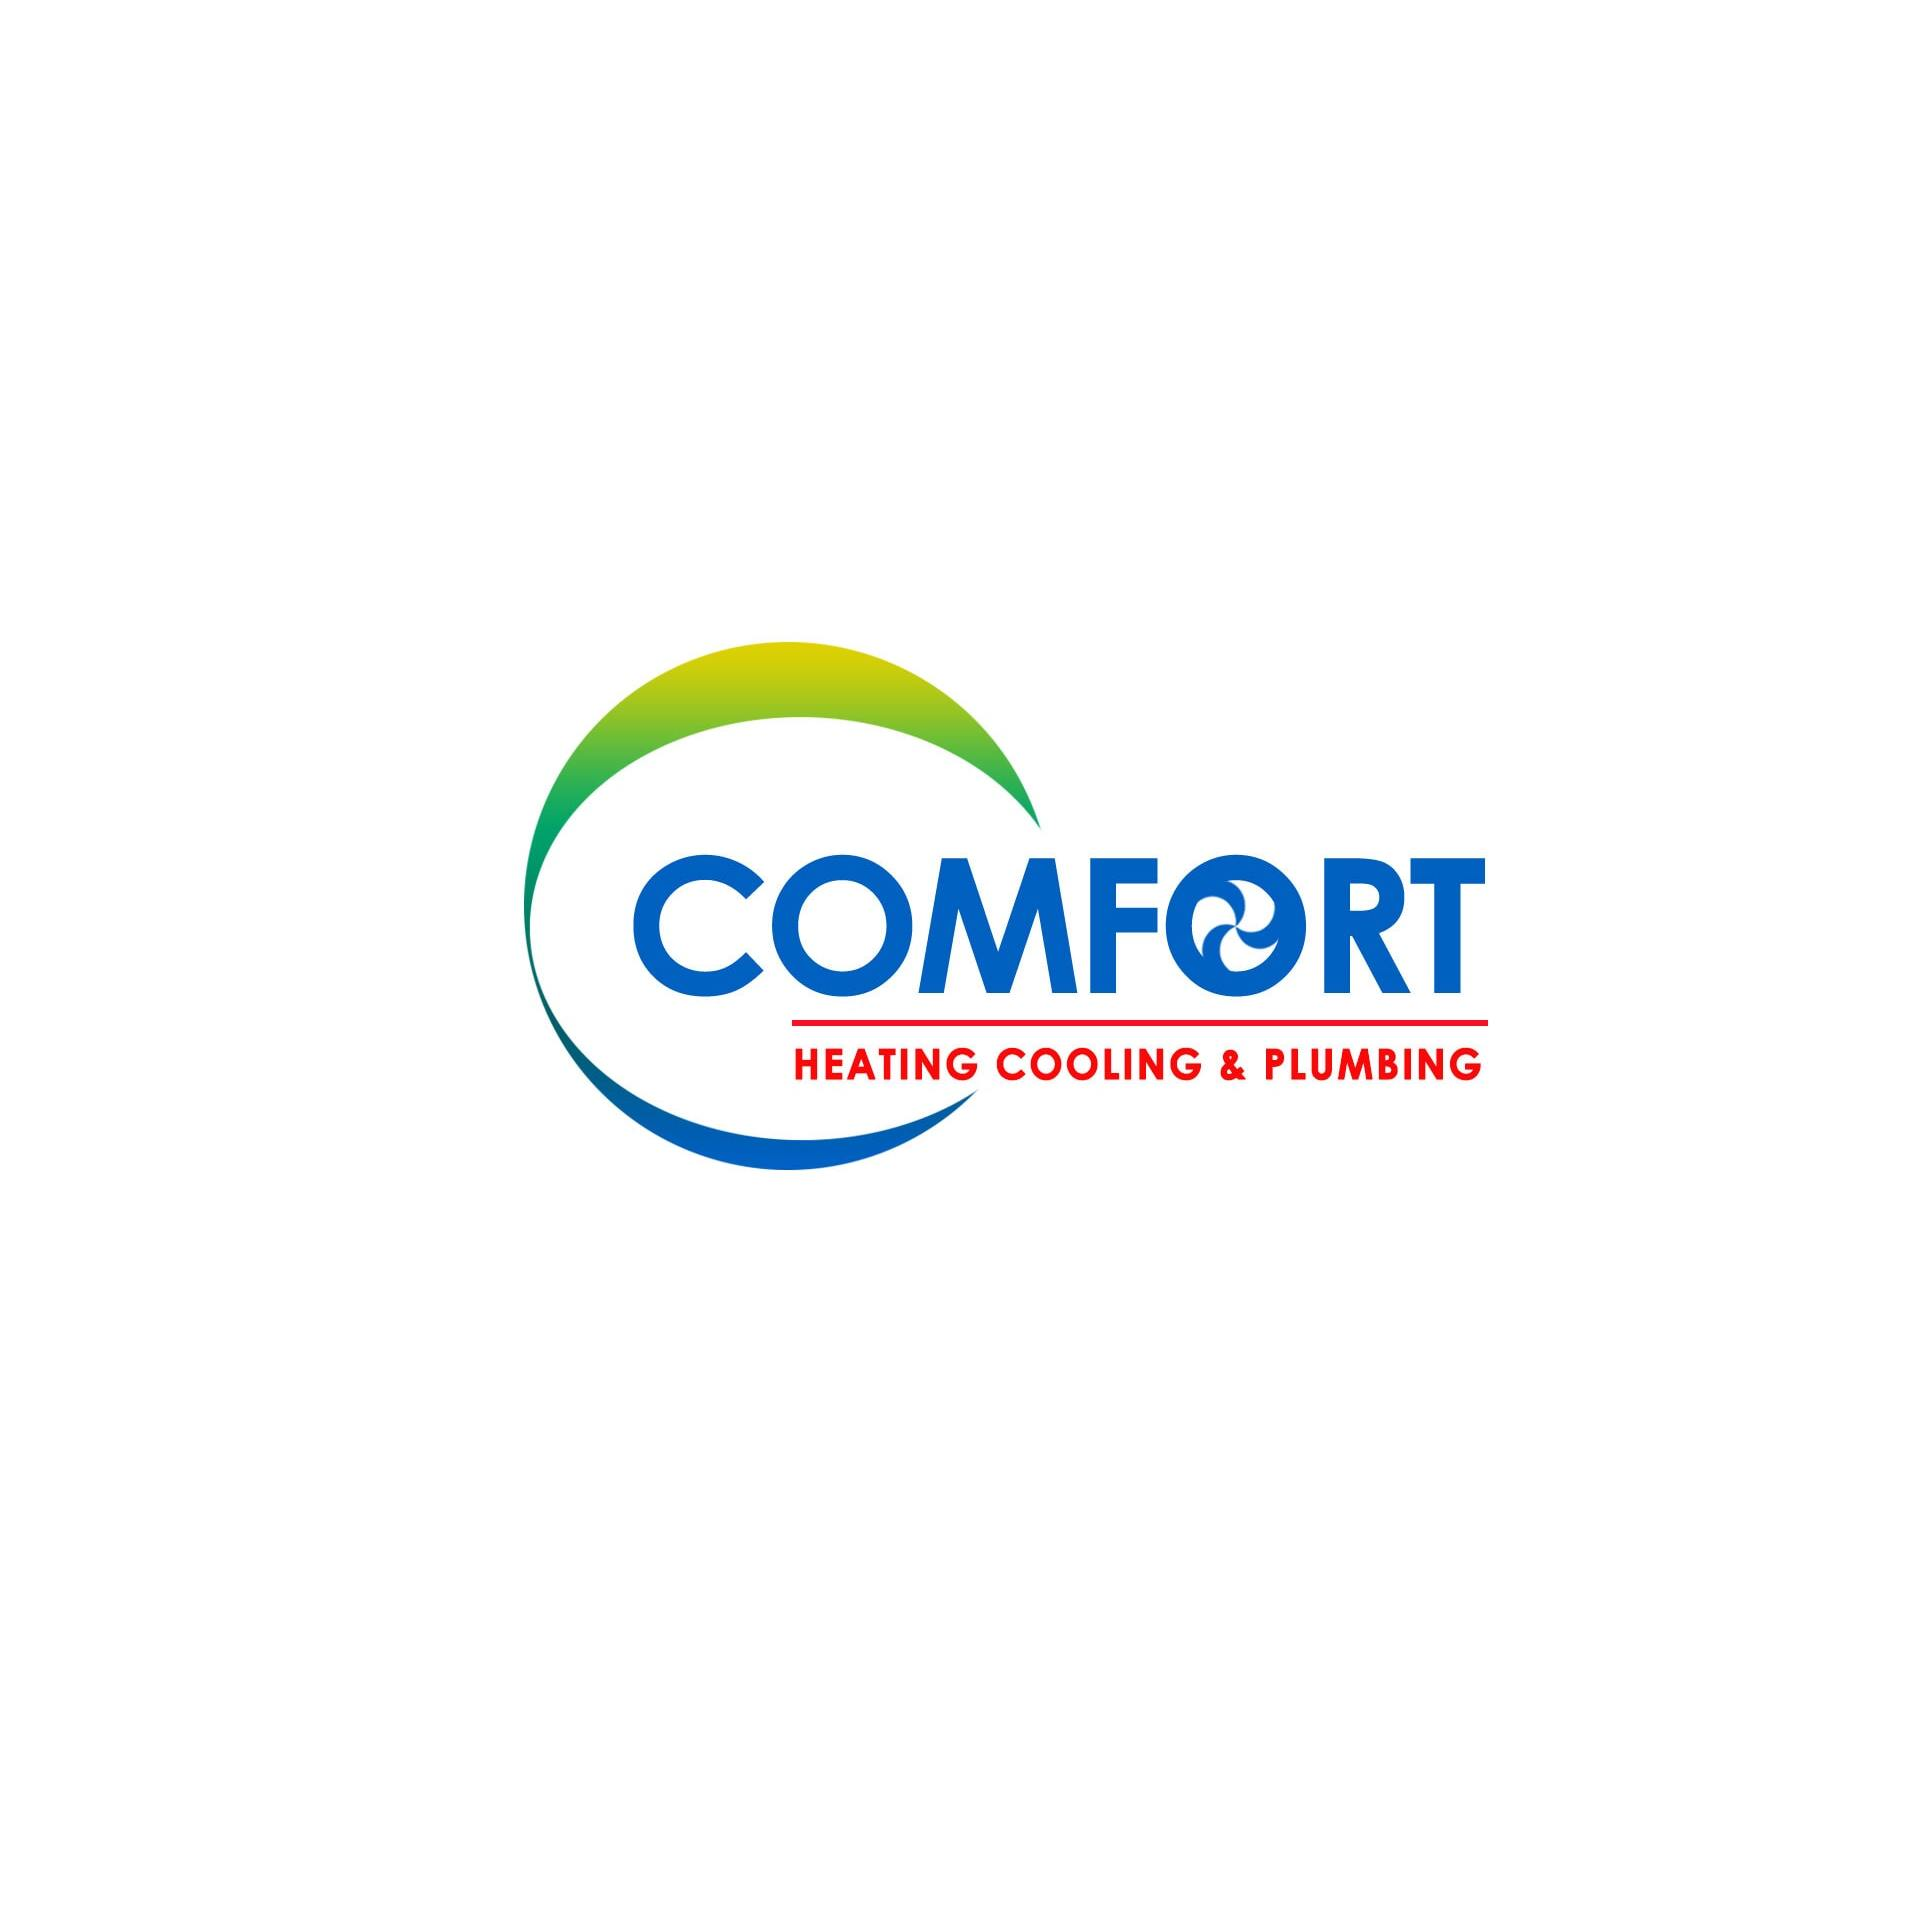 Comfort Heating, Cooling and Plumbing